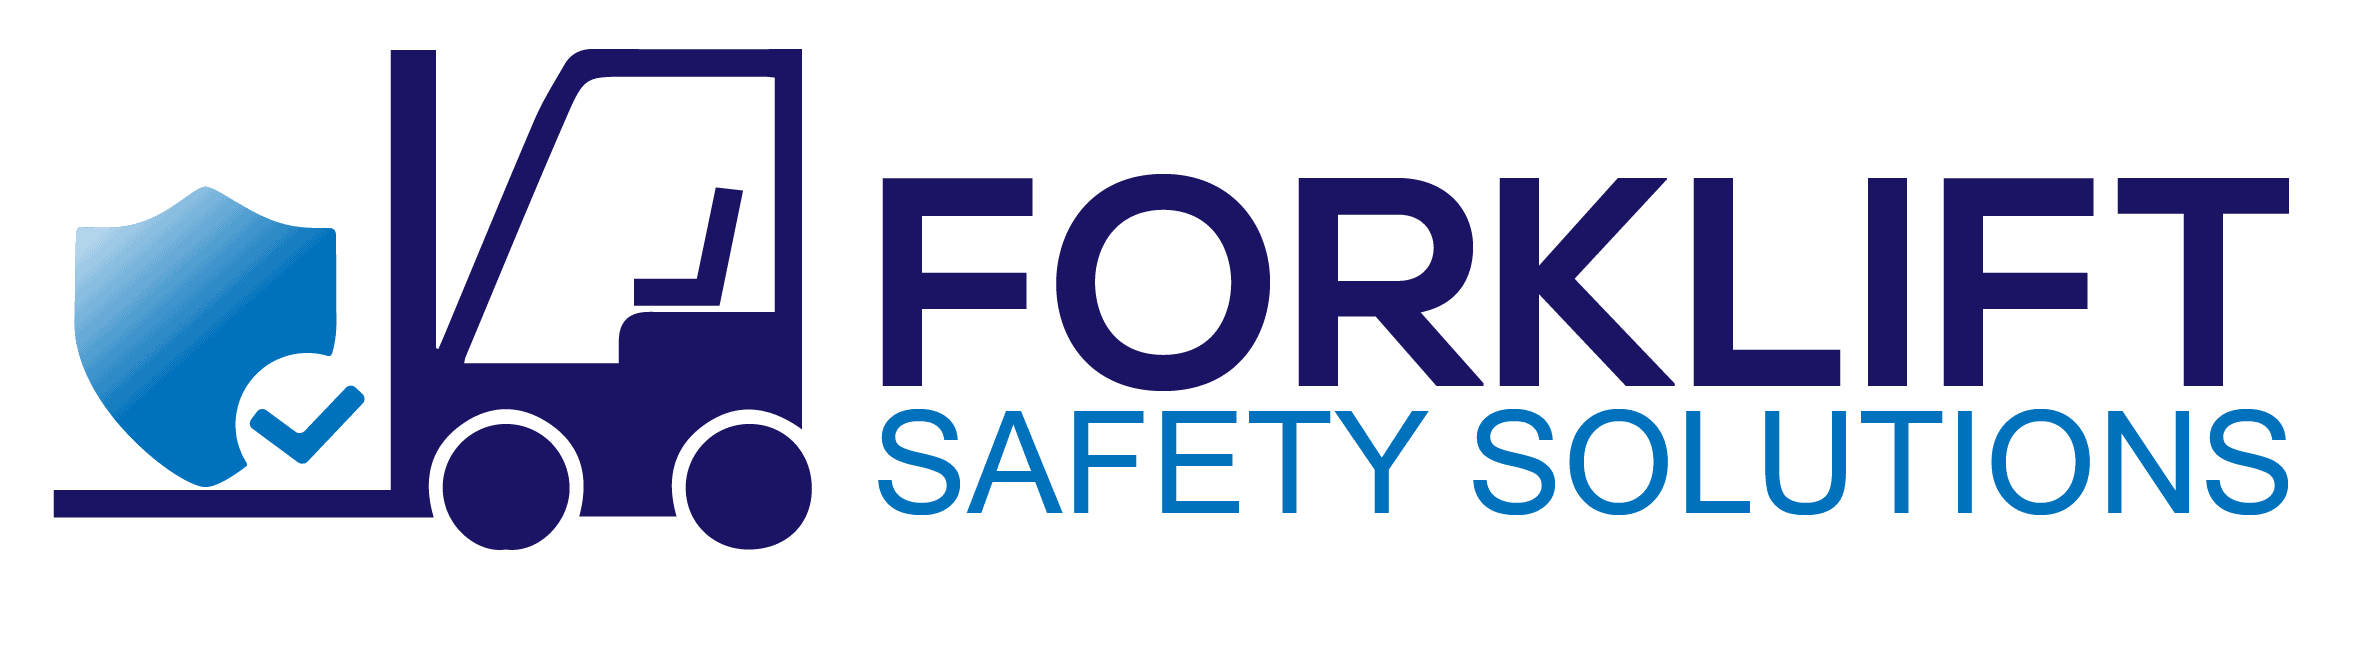 Forklift Safety Solutions - #1 Rated Forklift Safety Lights Store